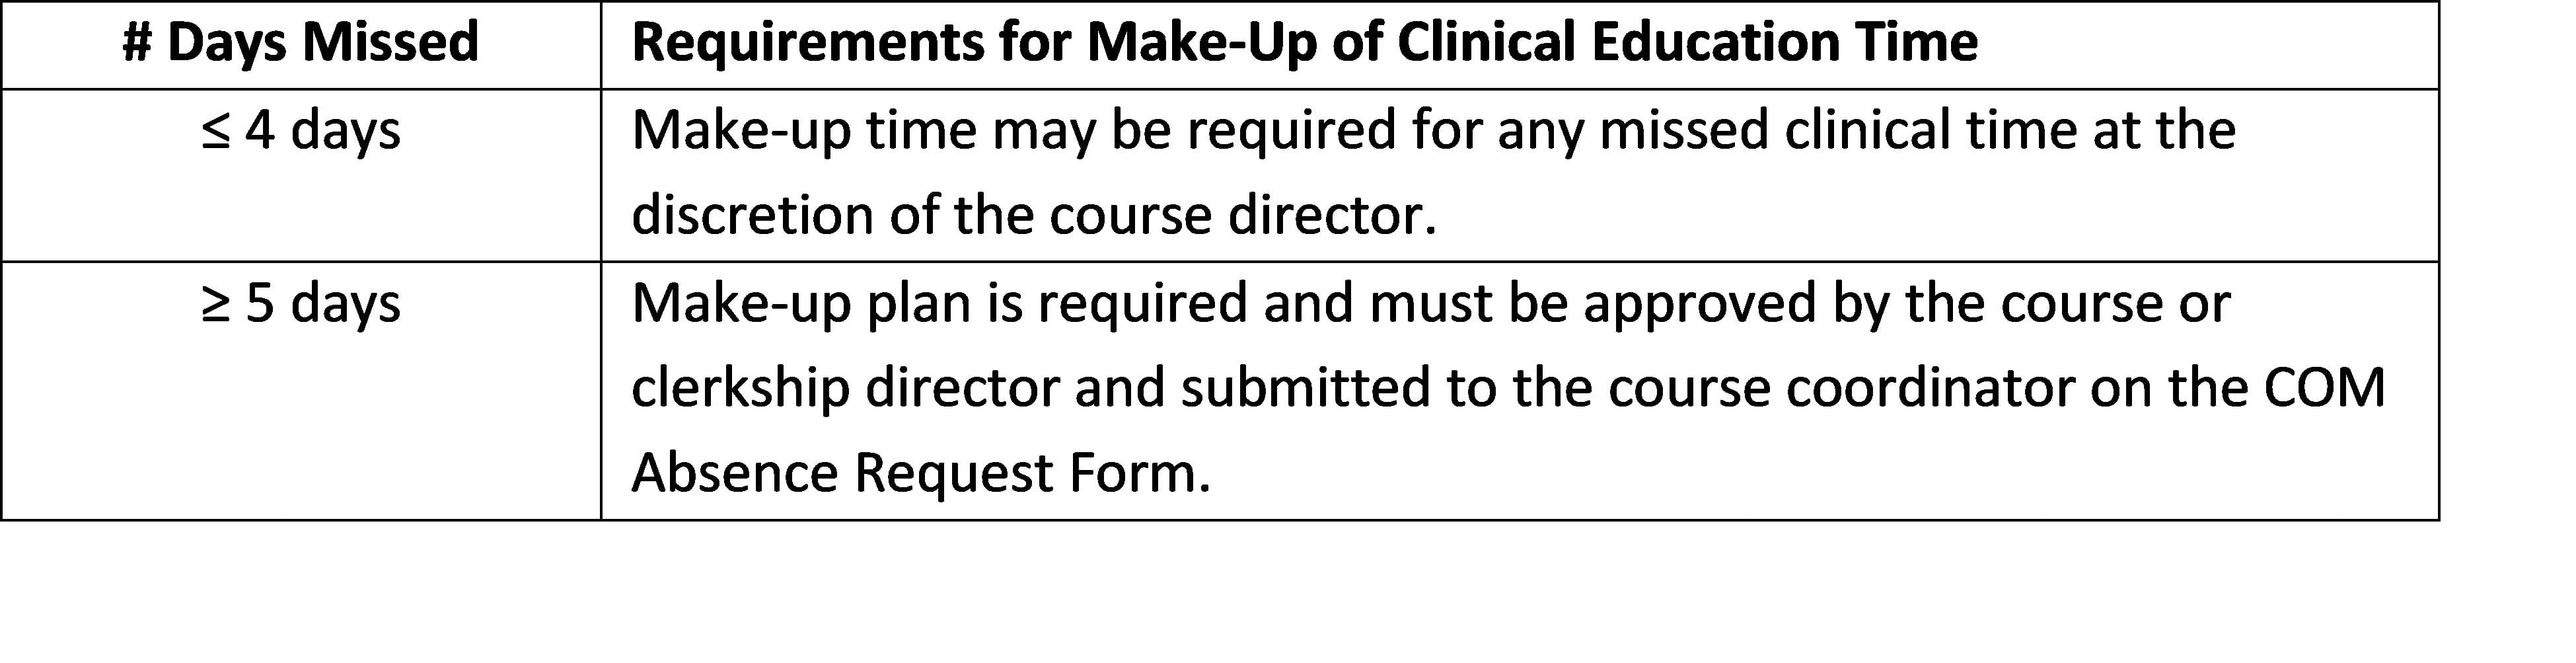 Requirements for Make-Up of Clinical Education Time Table